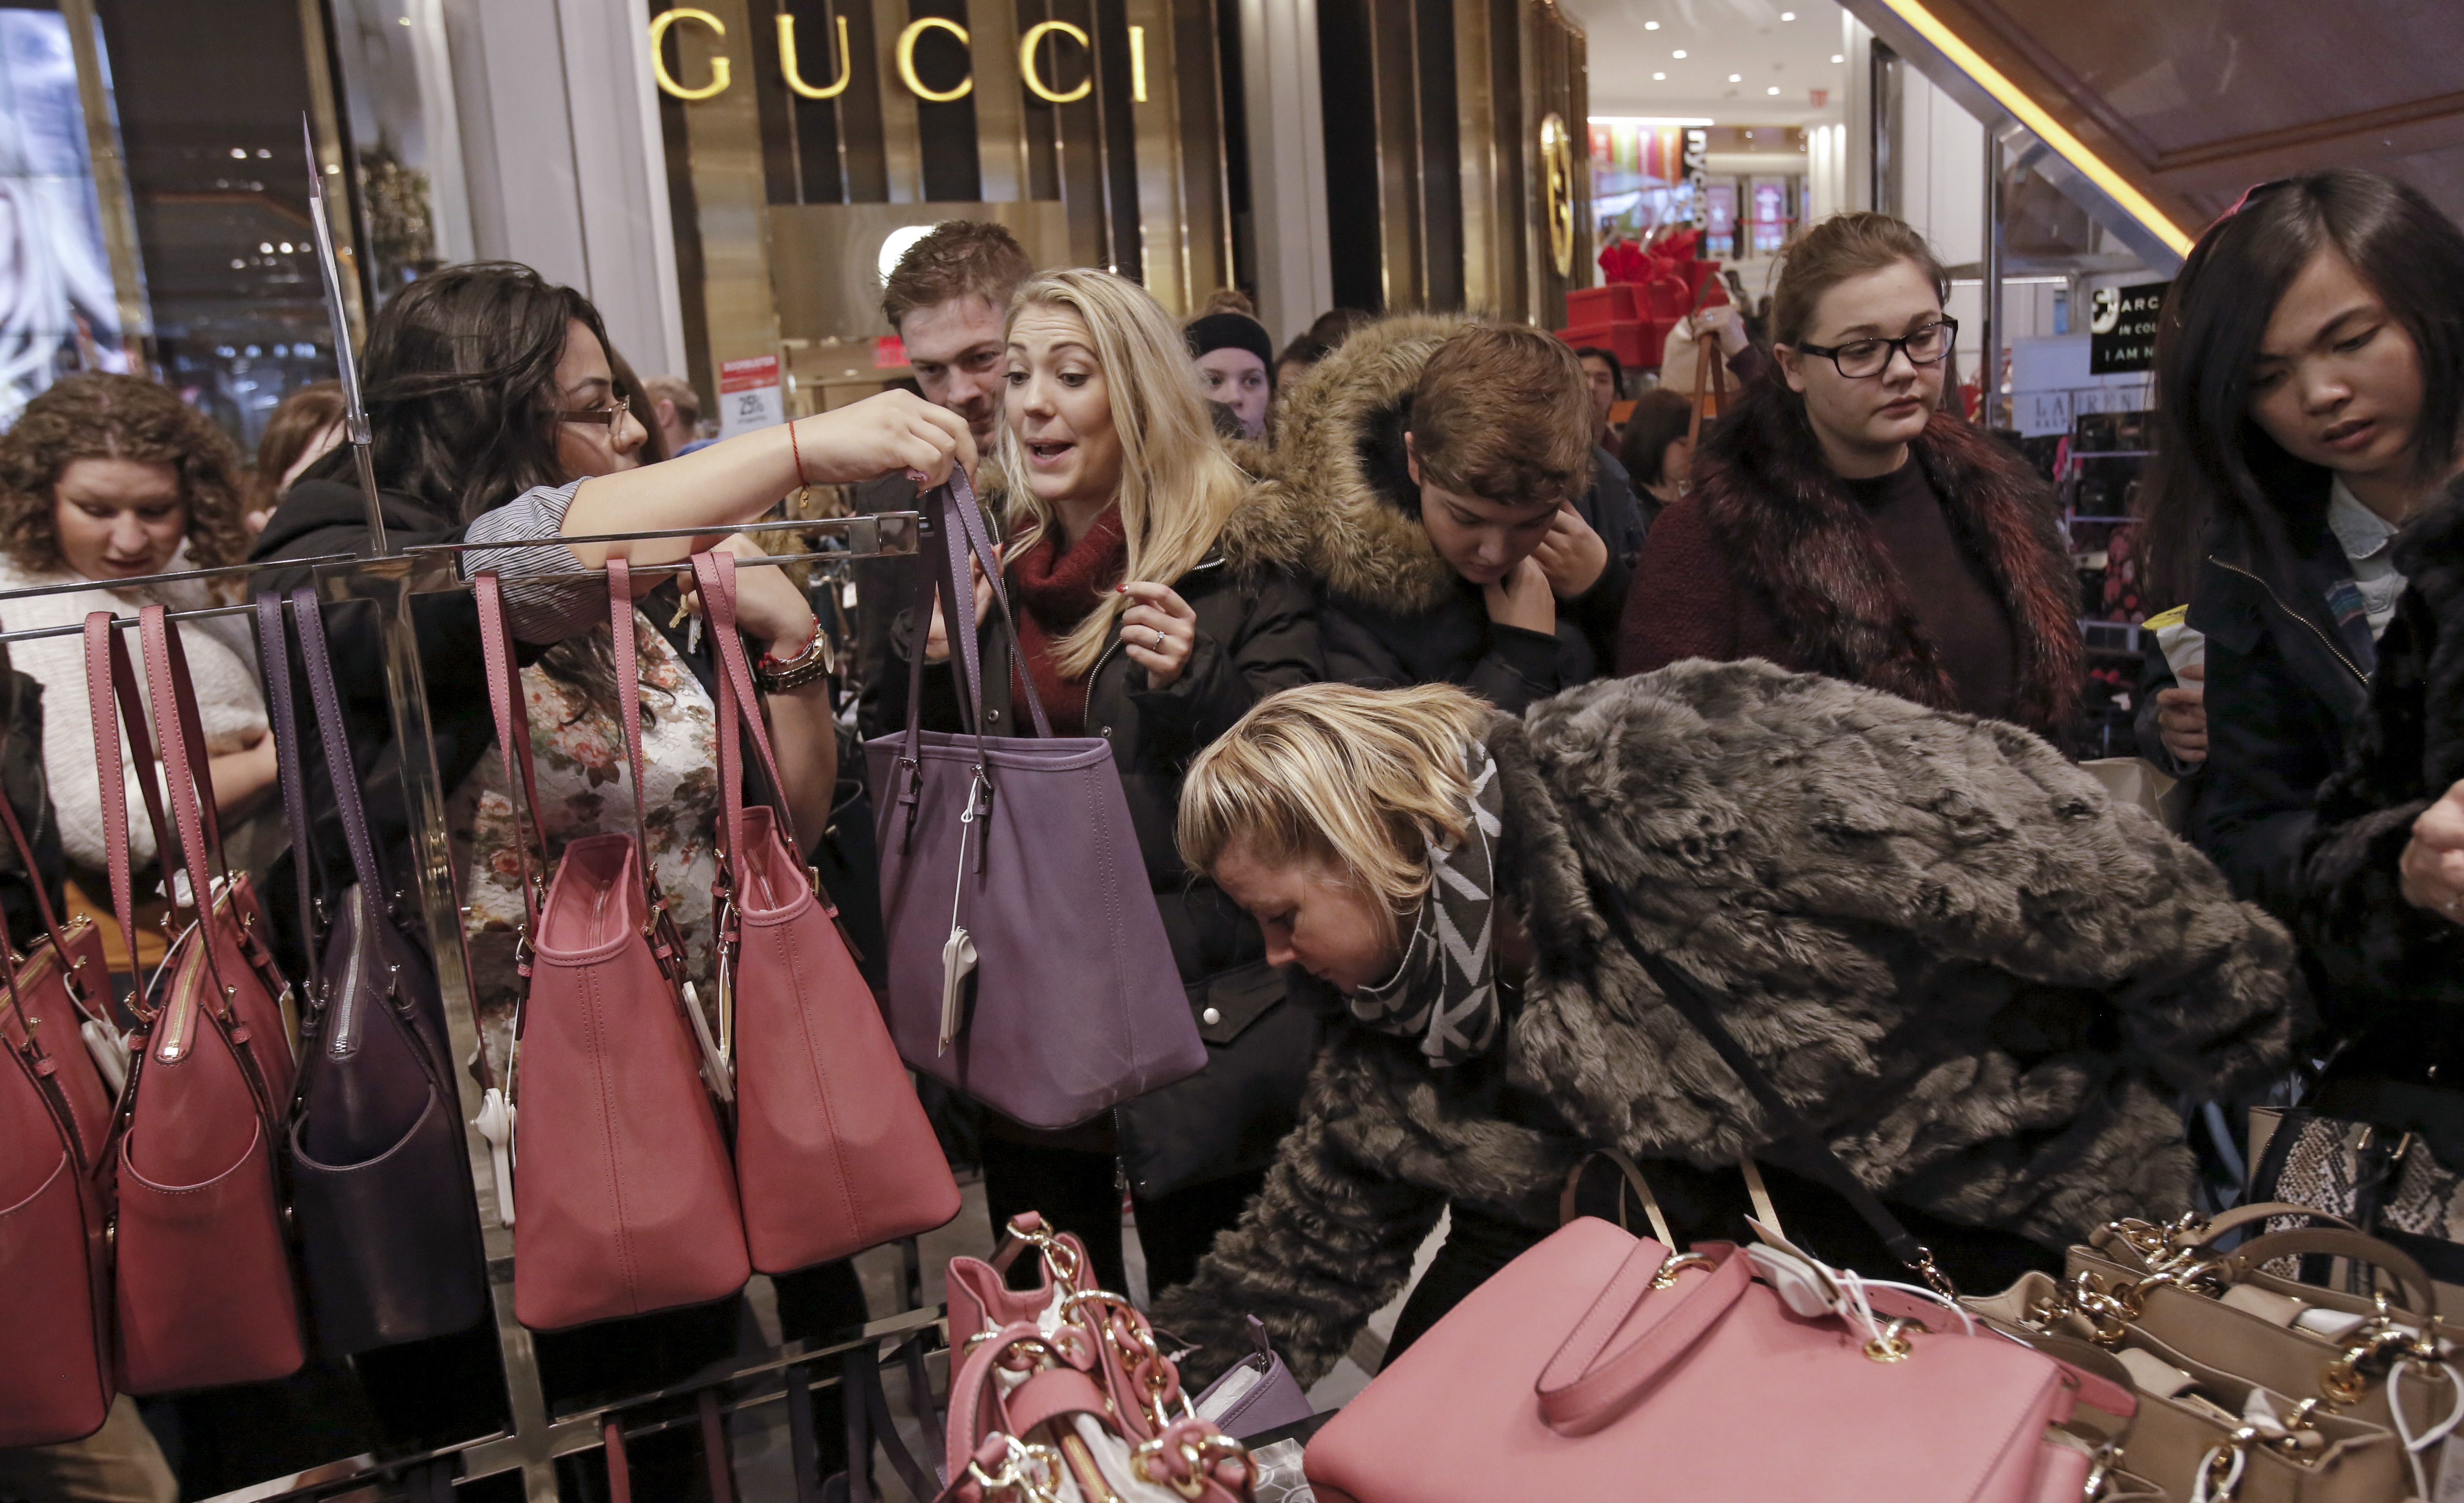 Women shop for handbags at Macy's Herald Square store during the early opening of the Black Friday sales in the Manhattan borough of New York, November 26, 2015. REUTERS/Andrew Kelly - GF20000075605